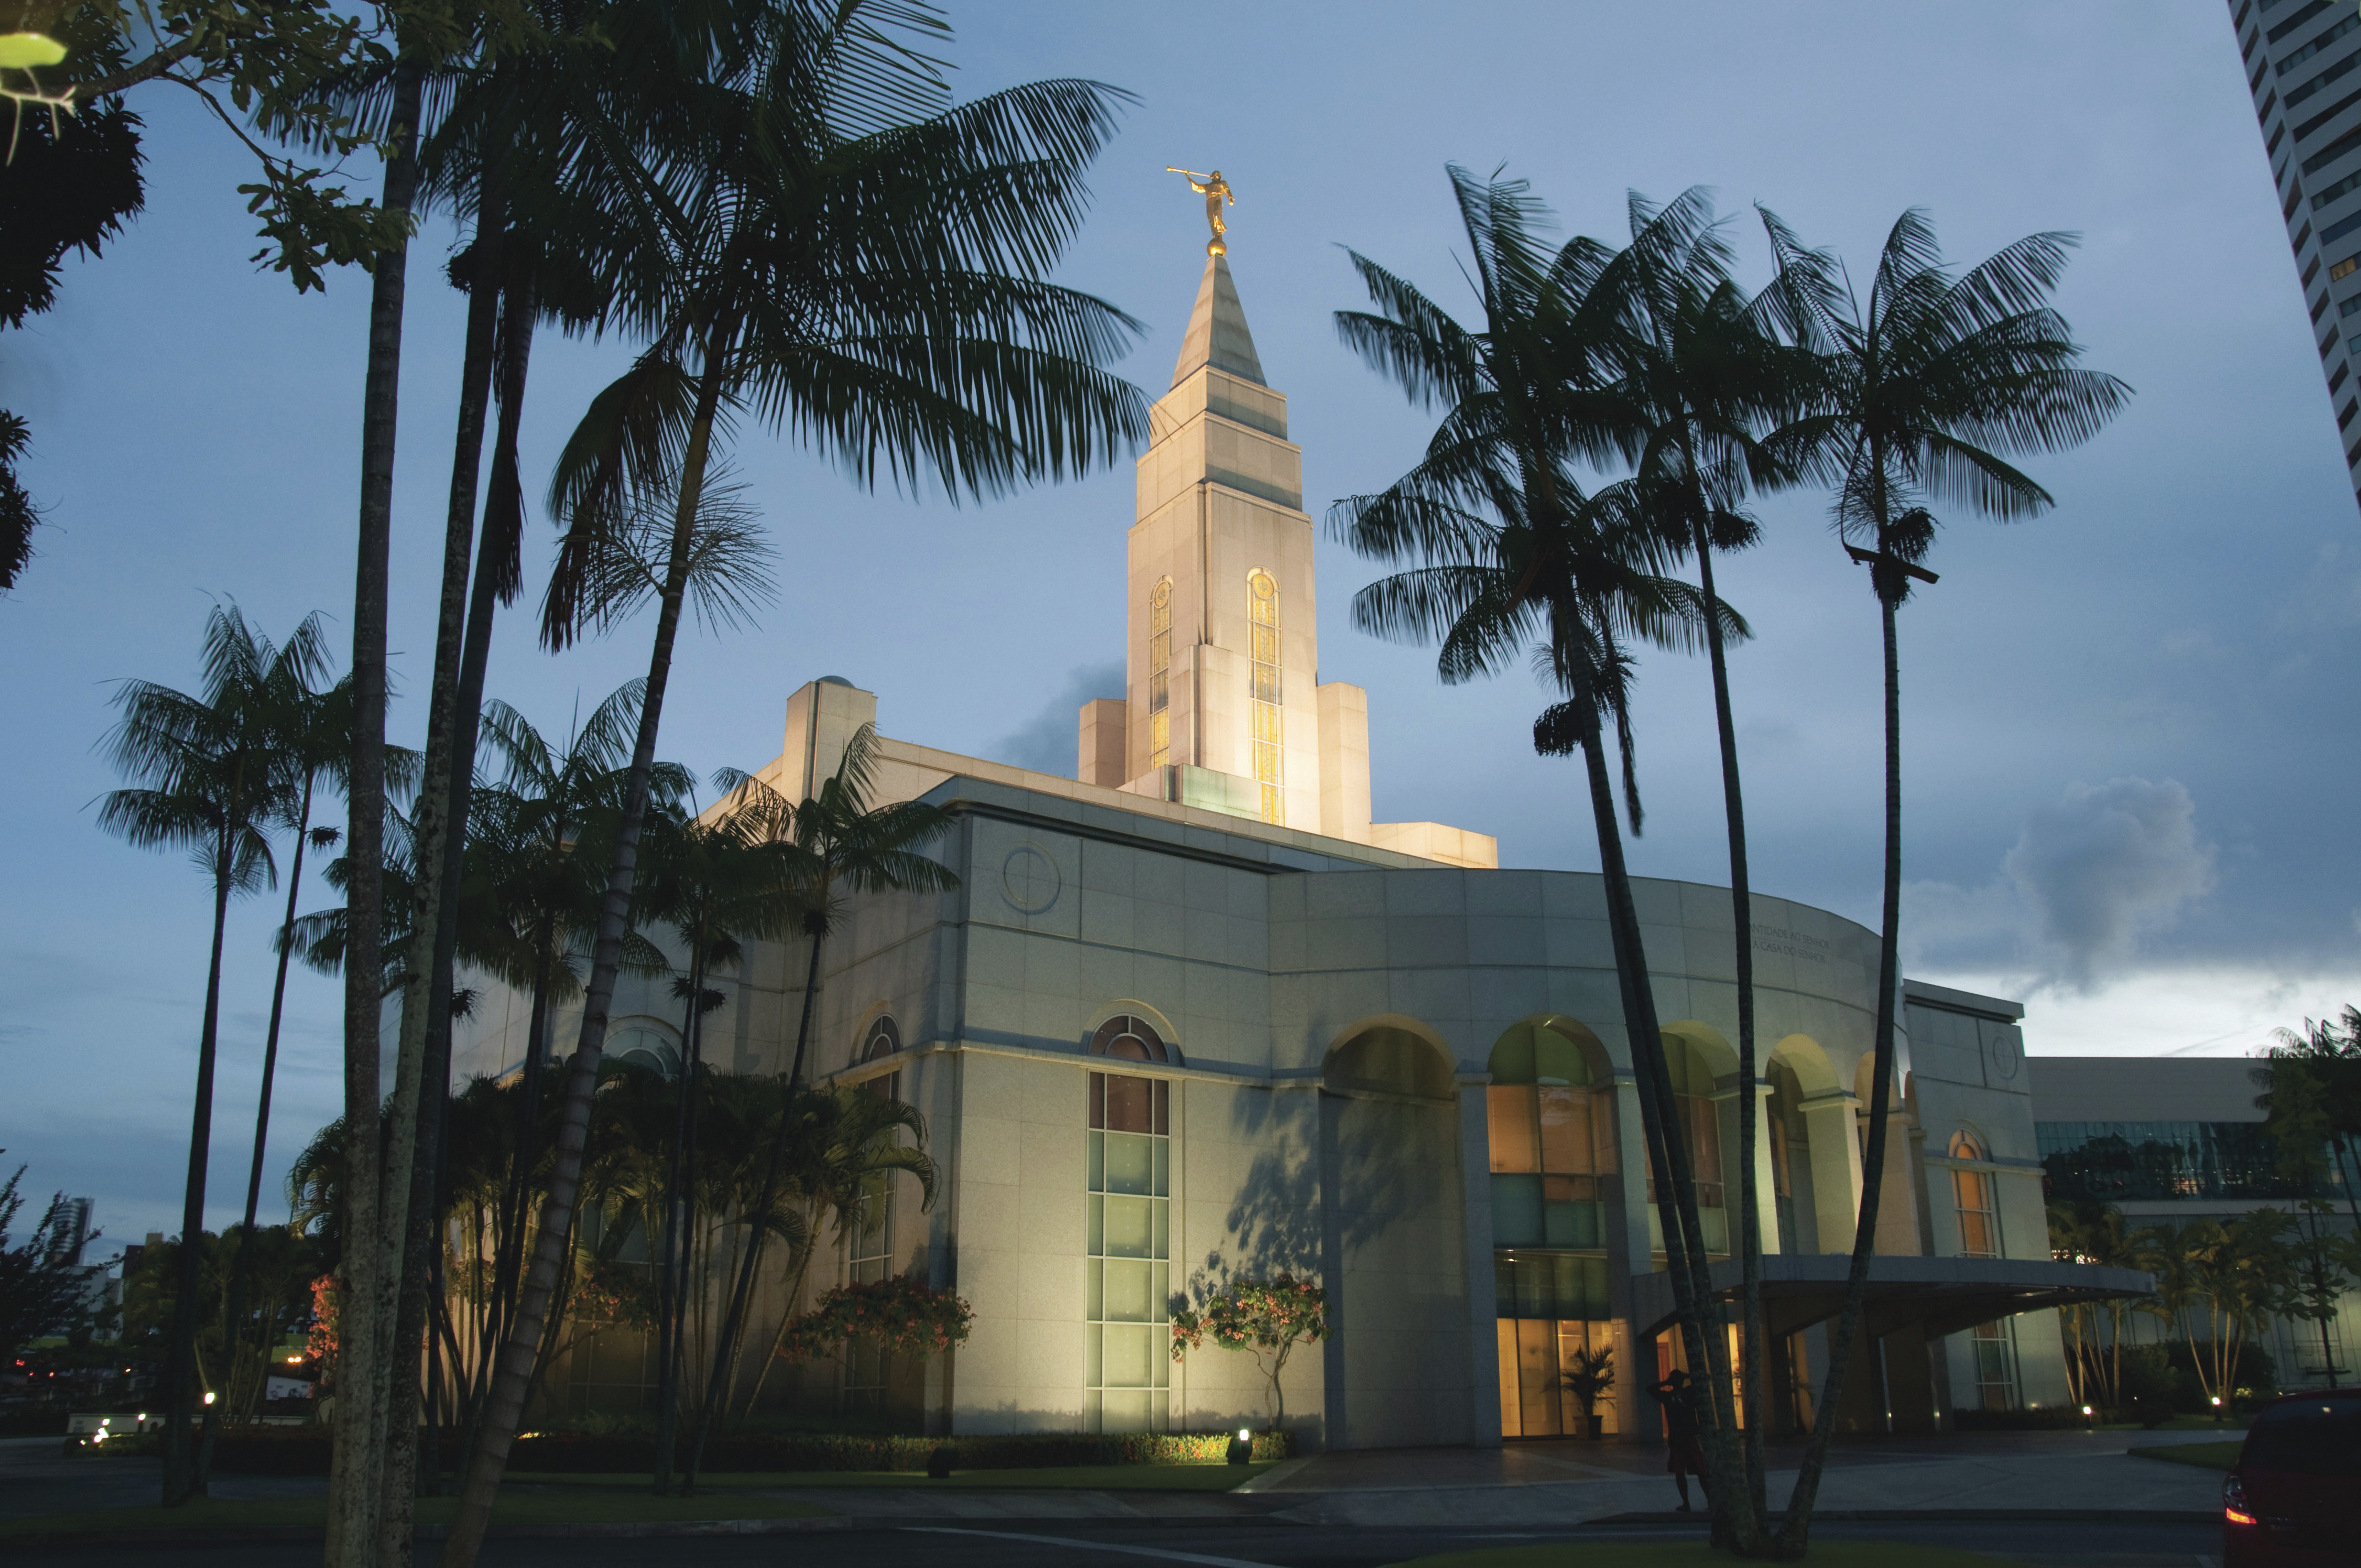 The Recife Brazil Temple in the evening, including the entrance and scenery.